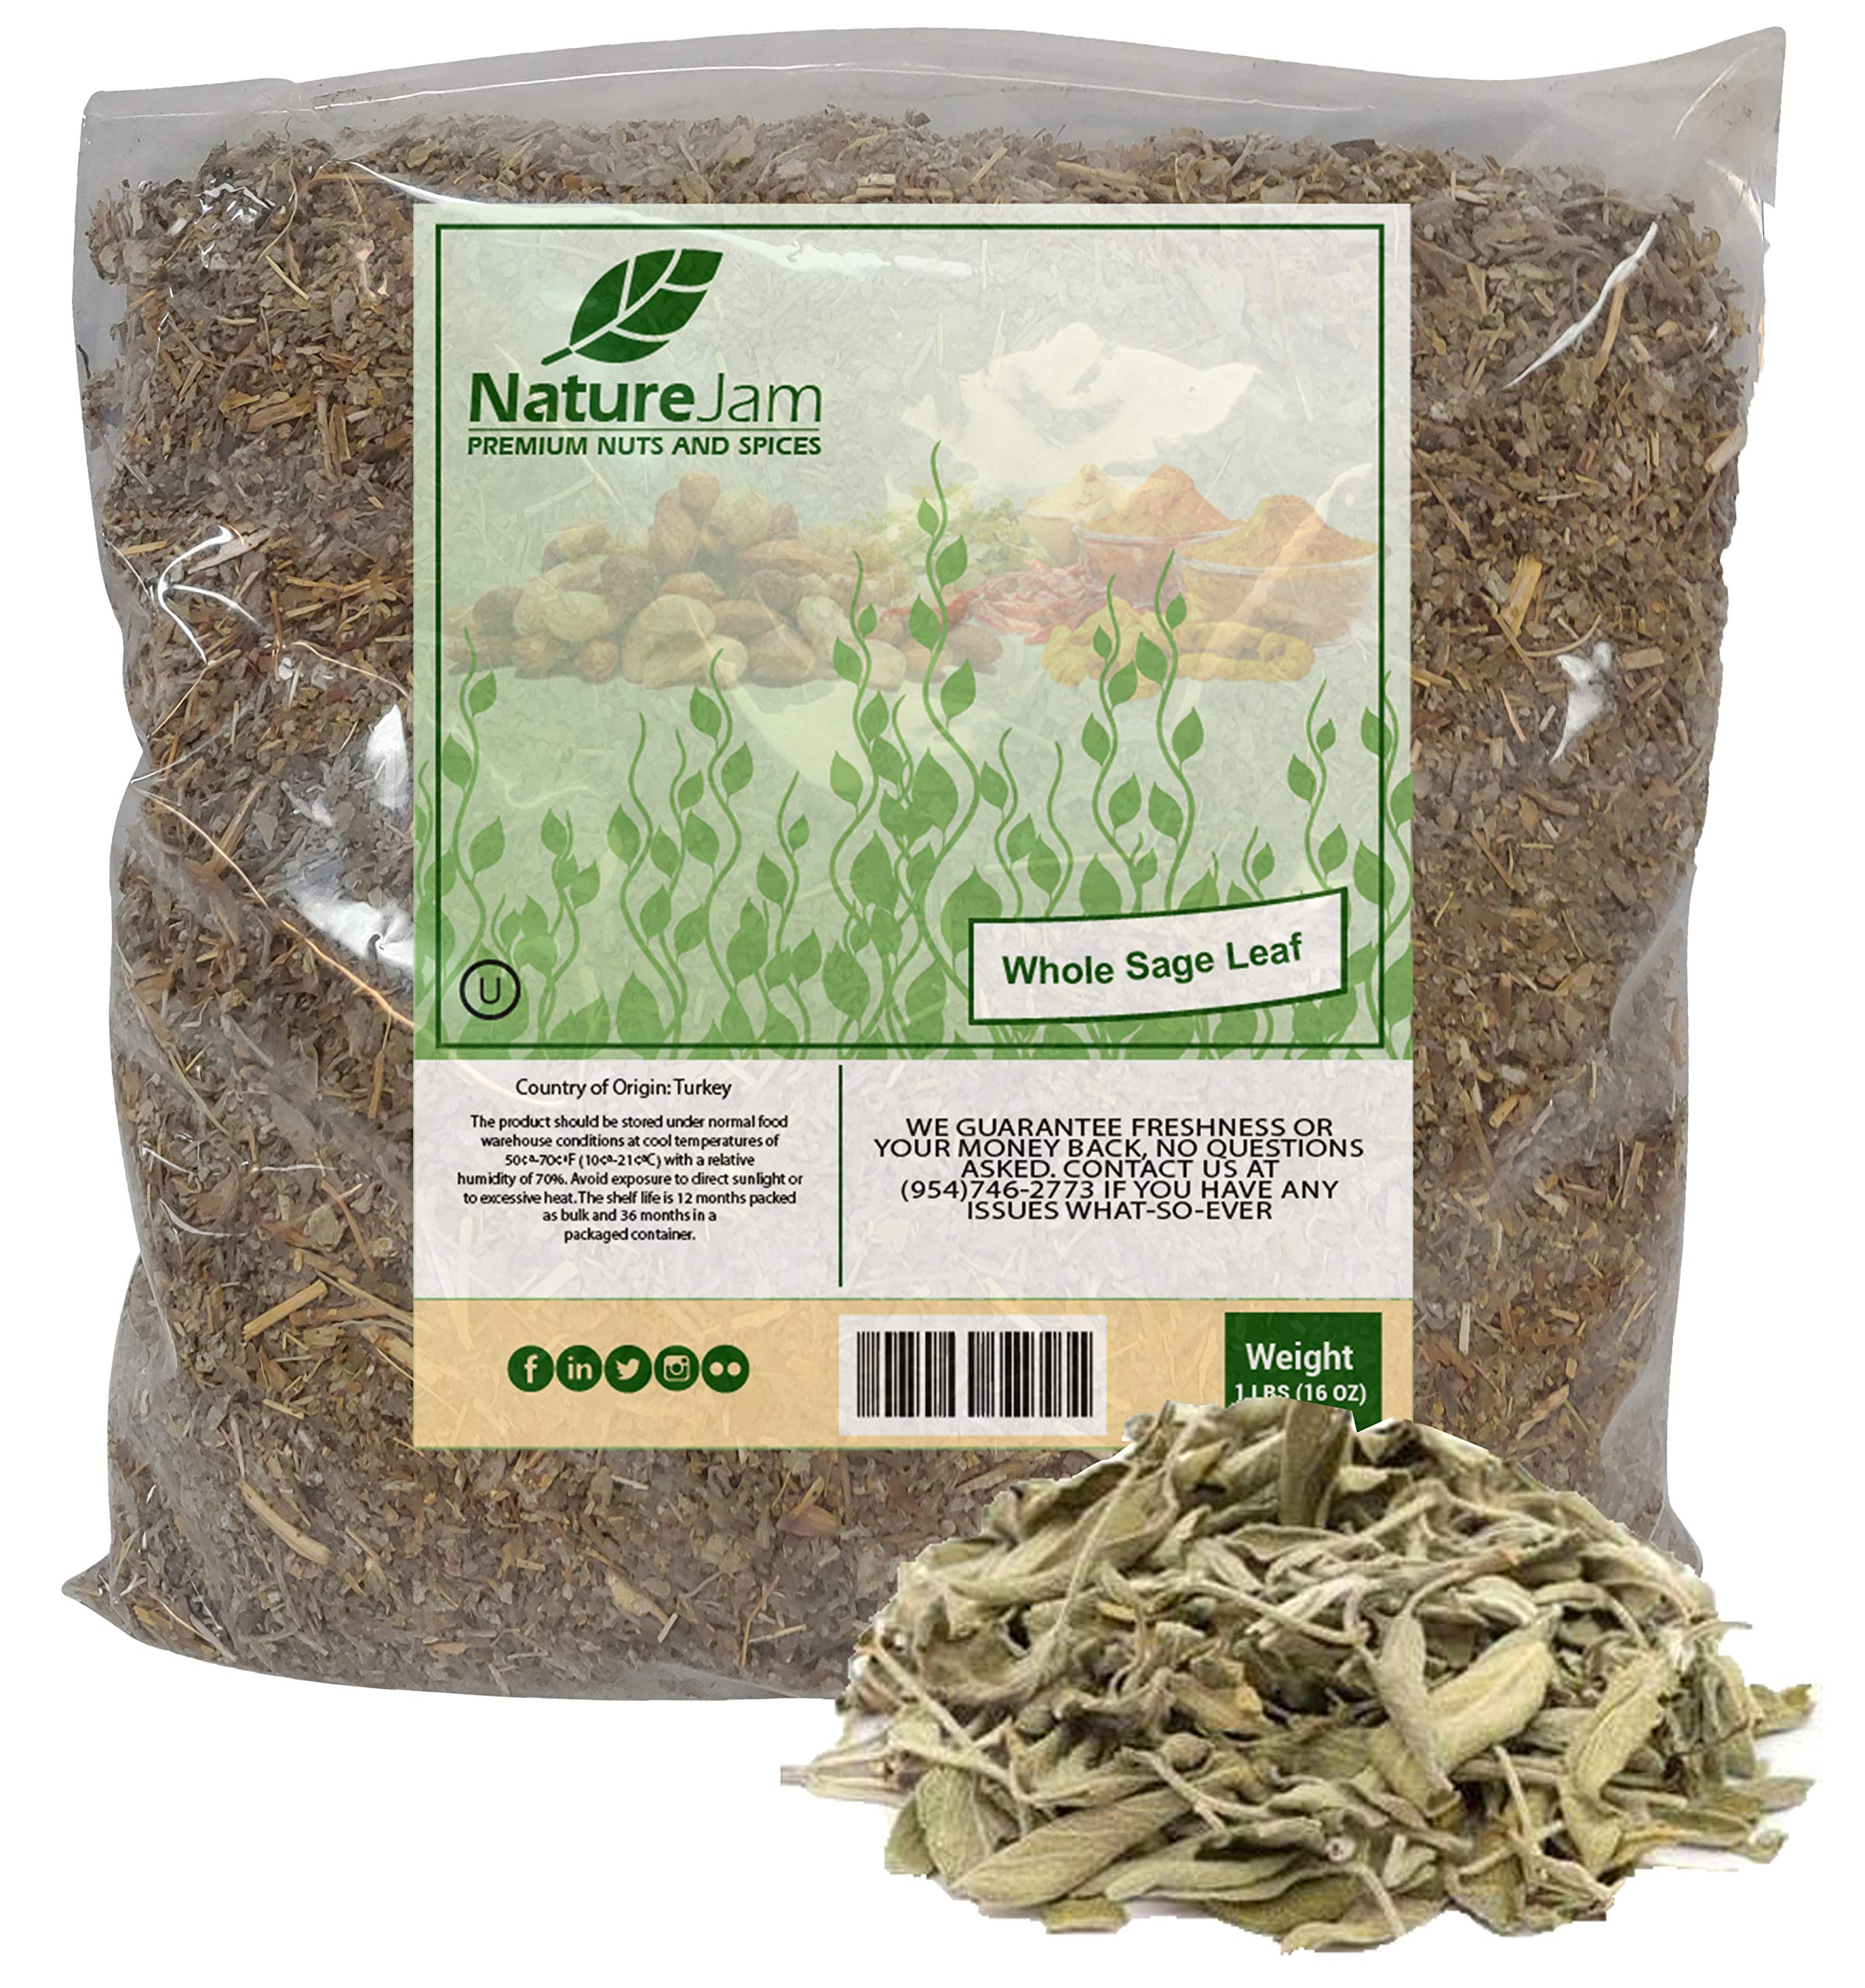 KOSHER BURNING Sage CRUSHED Leaves - Smudged and Rubbed for Incense Salvia officinalis Herbs For Tea (1 Pound)